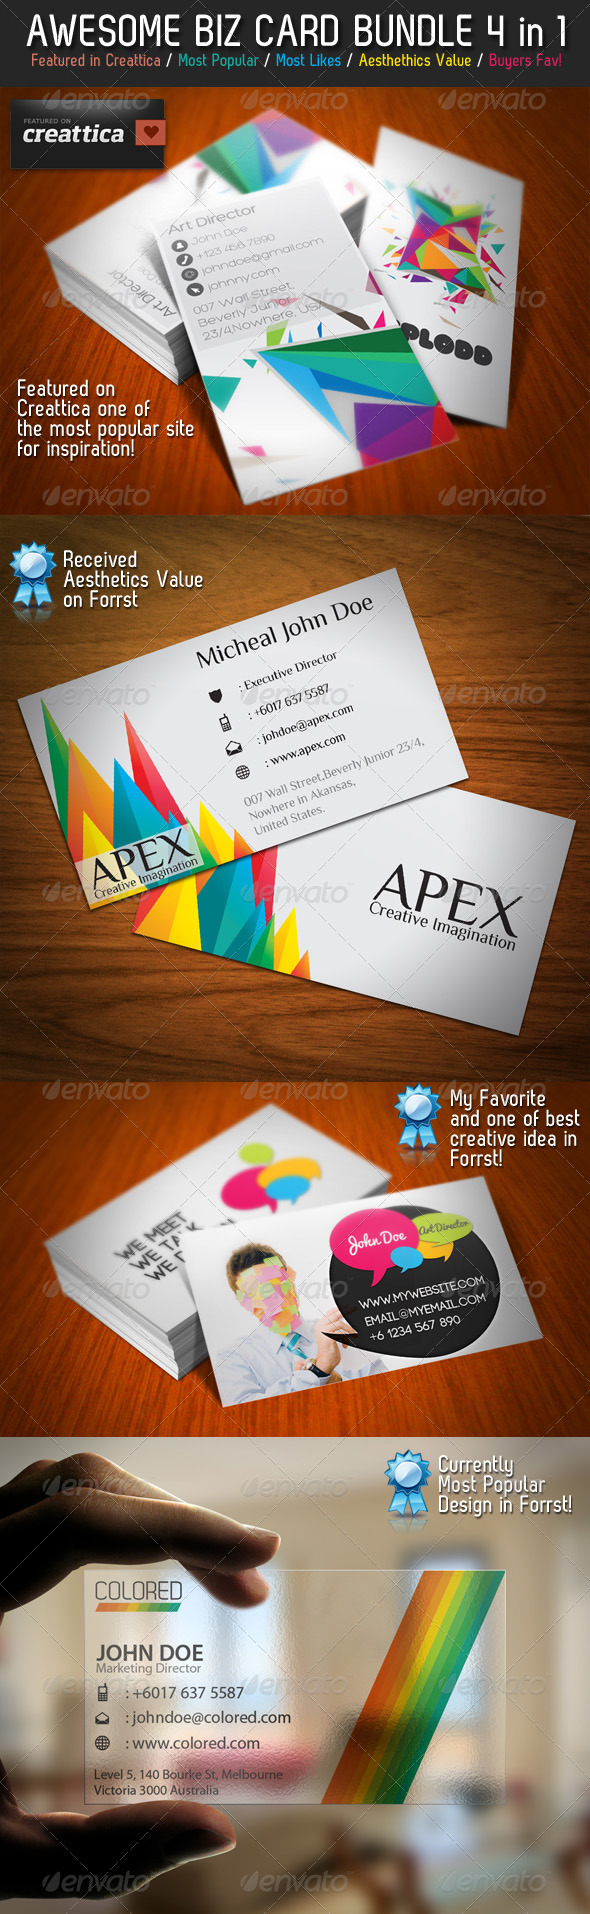 Colorful Business Card Bundle 4 in 1 - Creative Business Cards